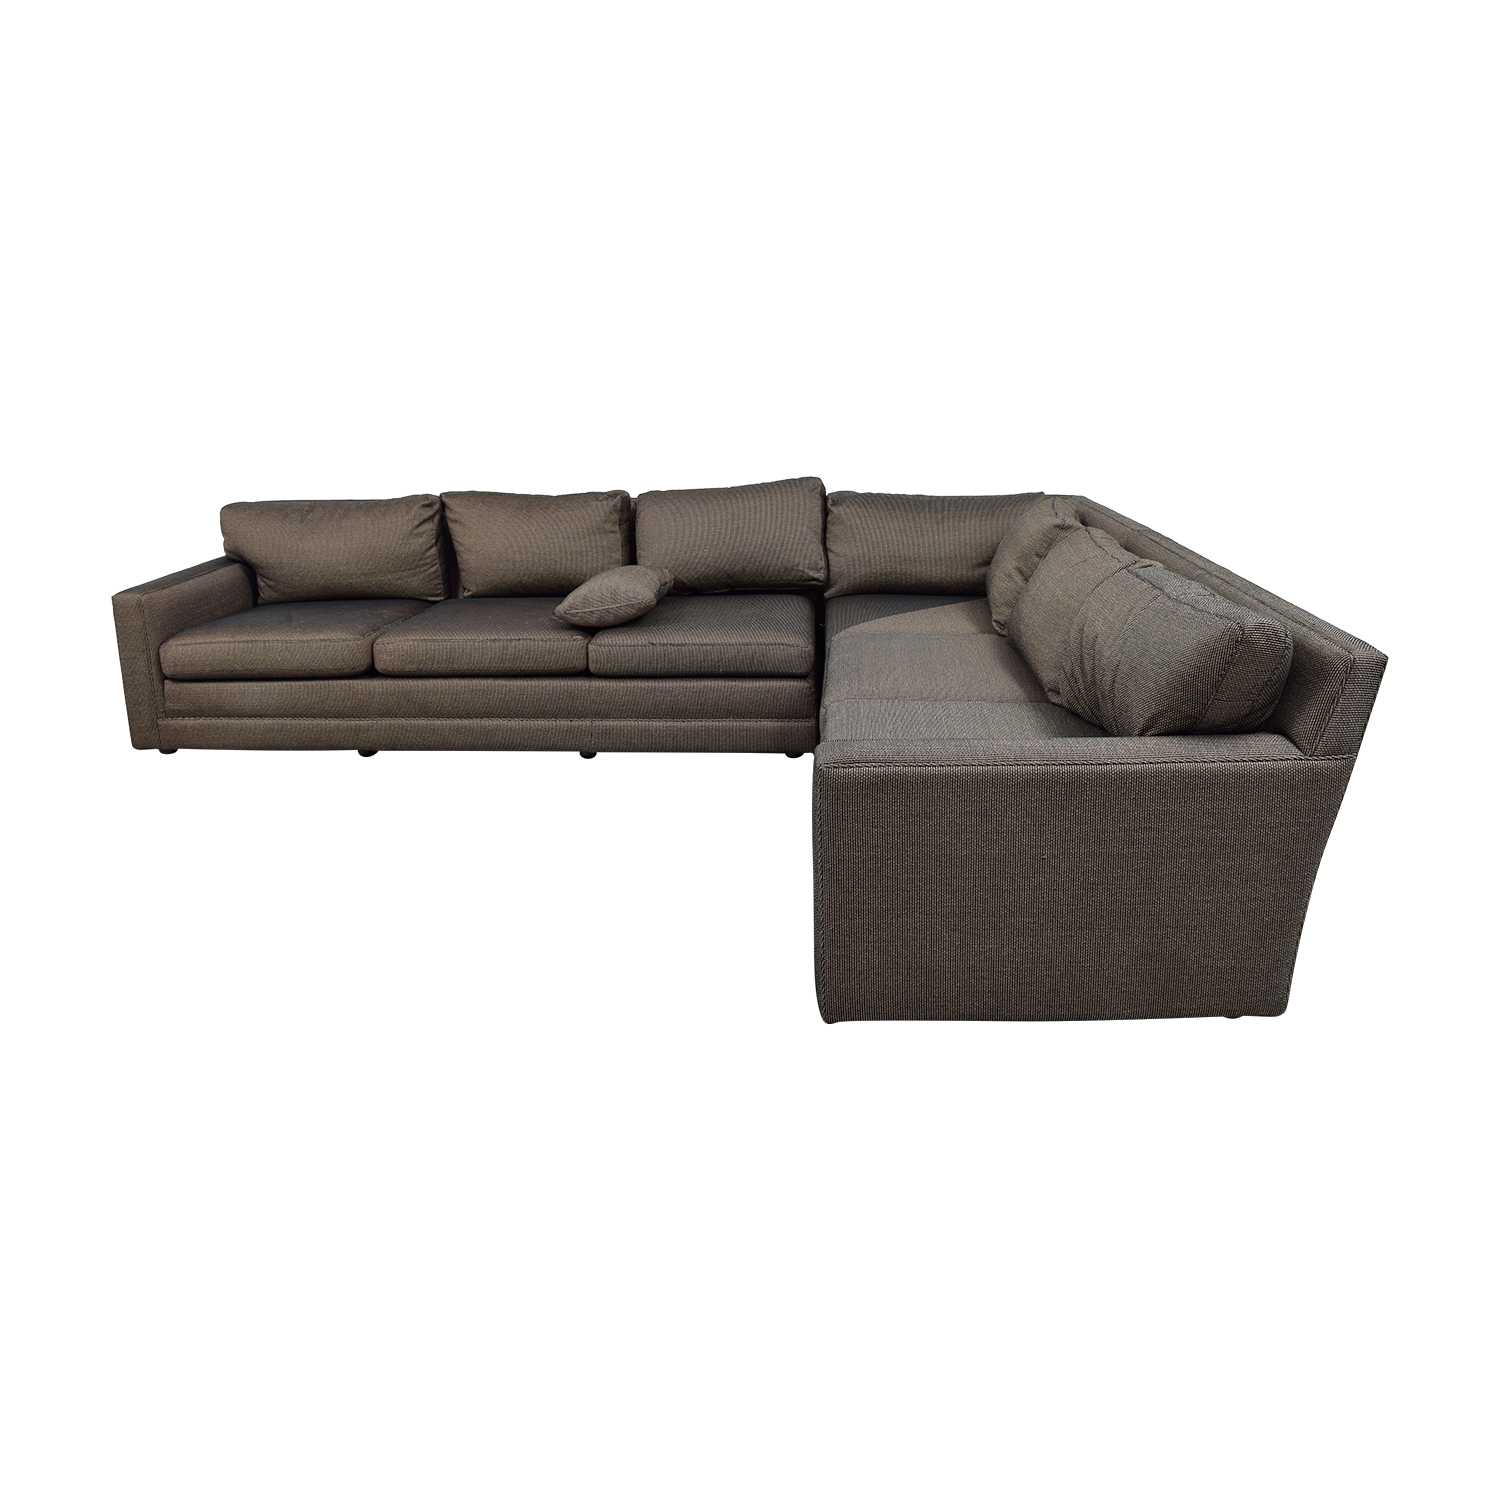 Keilhauer Keilhauer Cascade Black and Tan Tweed L-Shaped Sectional Sofas